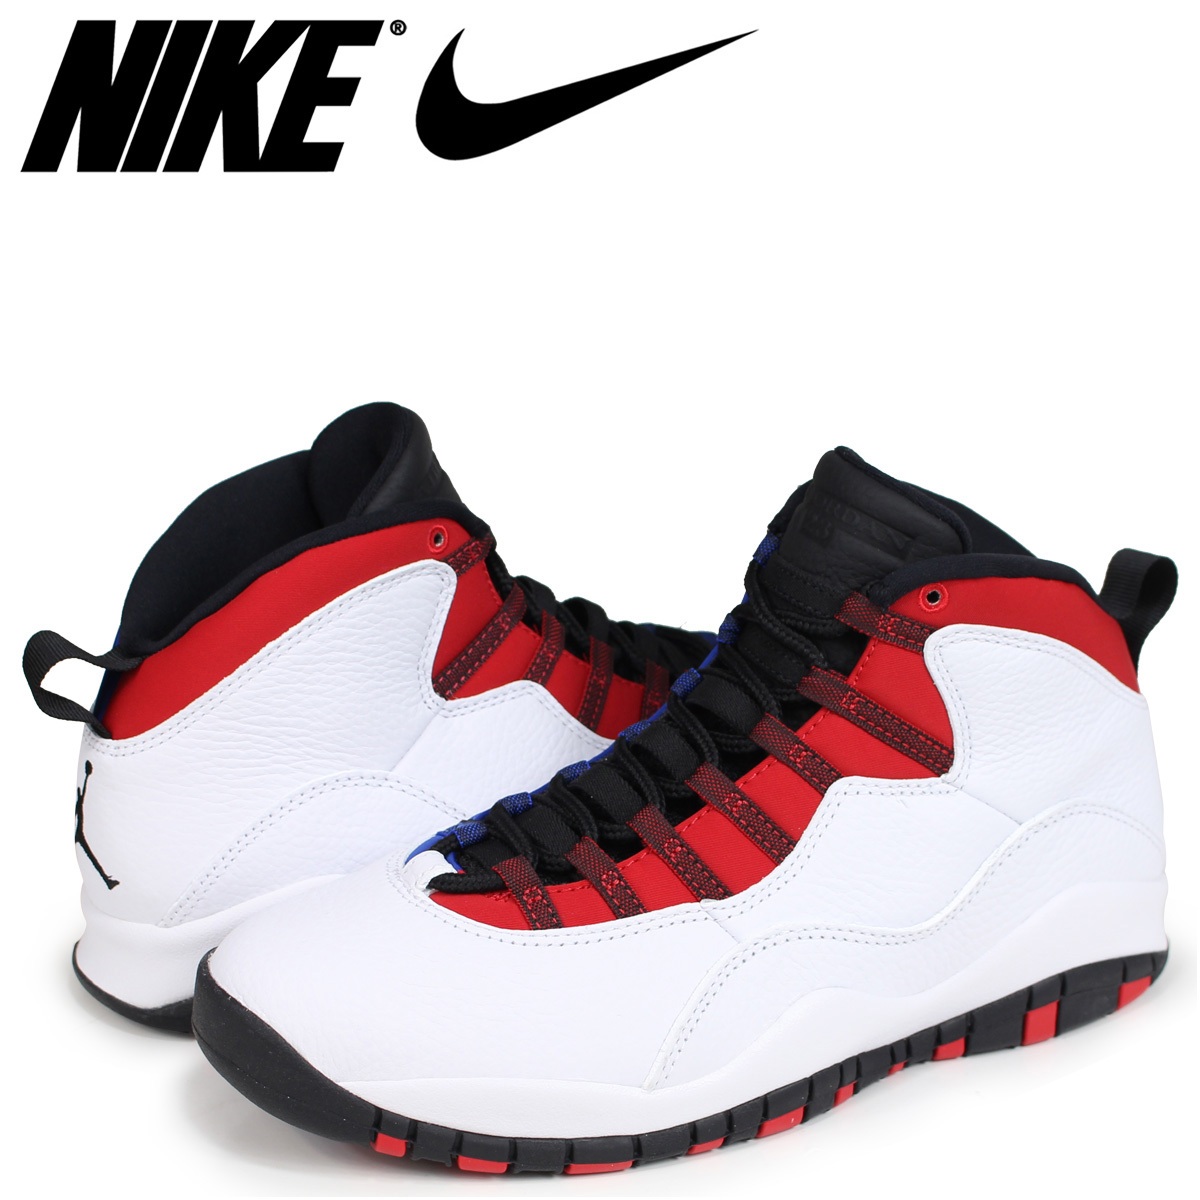 buy popular 6204e 0b22e NIKE AIR JORDAN 10 RETRO RUSSELL WESTBROOK Nike Air Jordan 10 sneakers  nostalgic men white 310,805-160